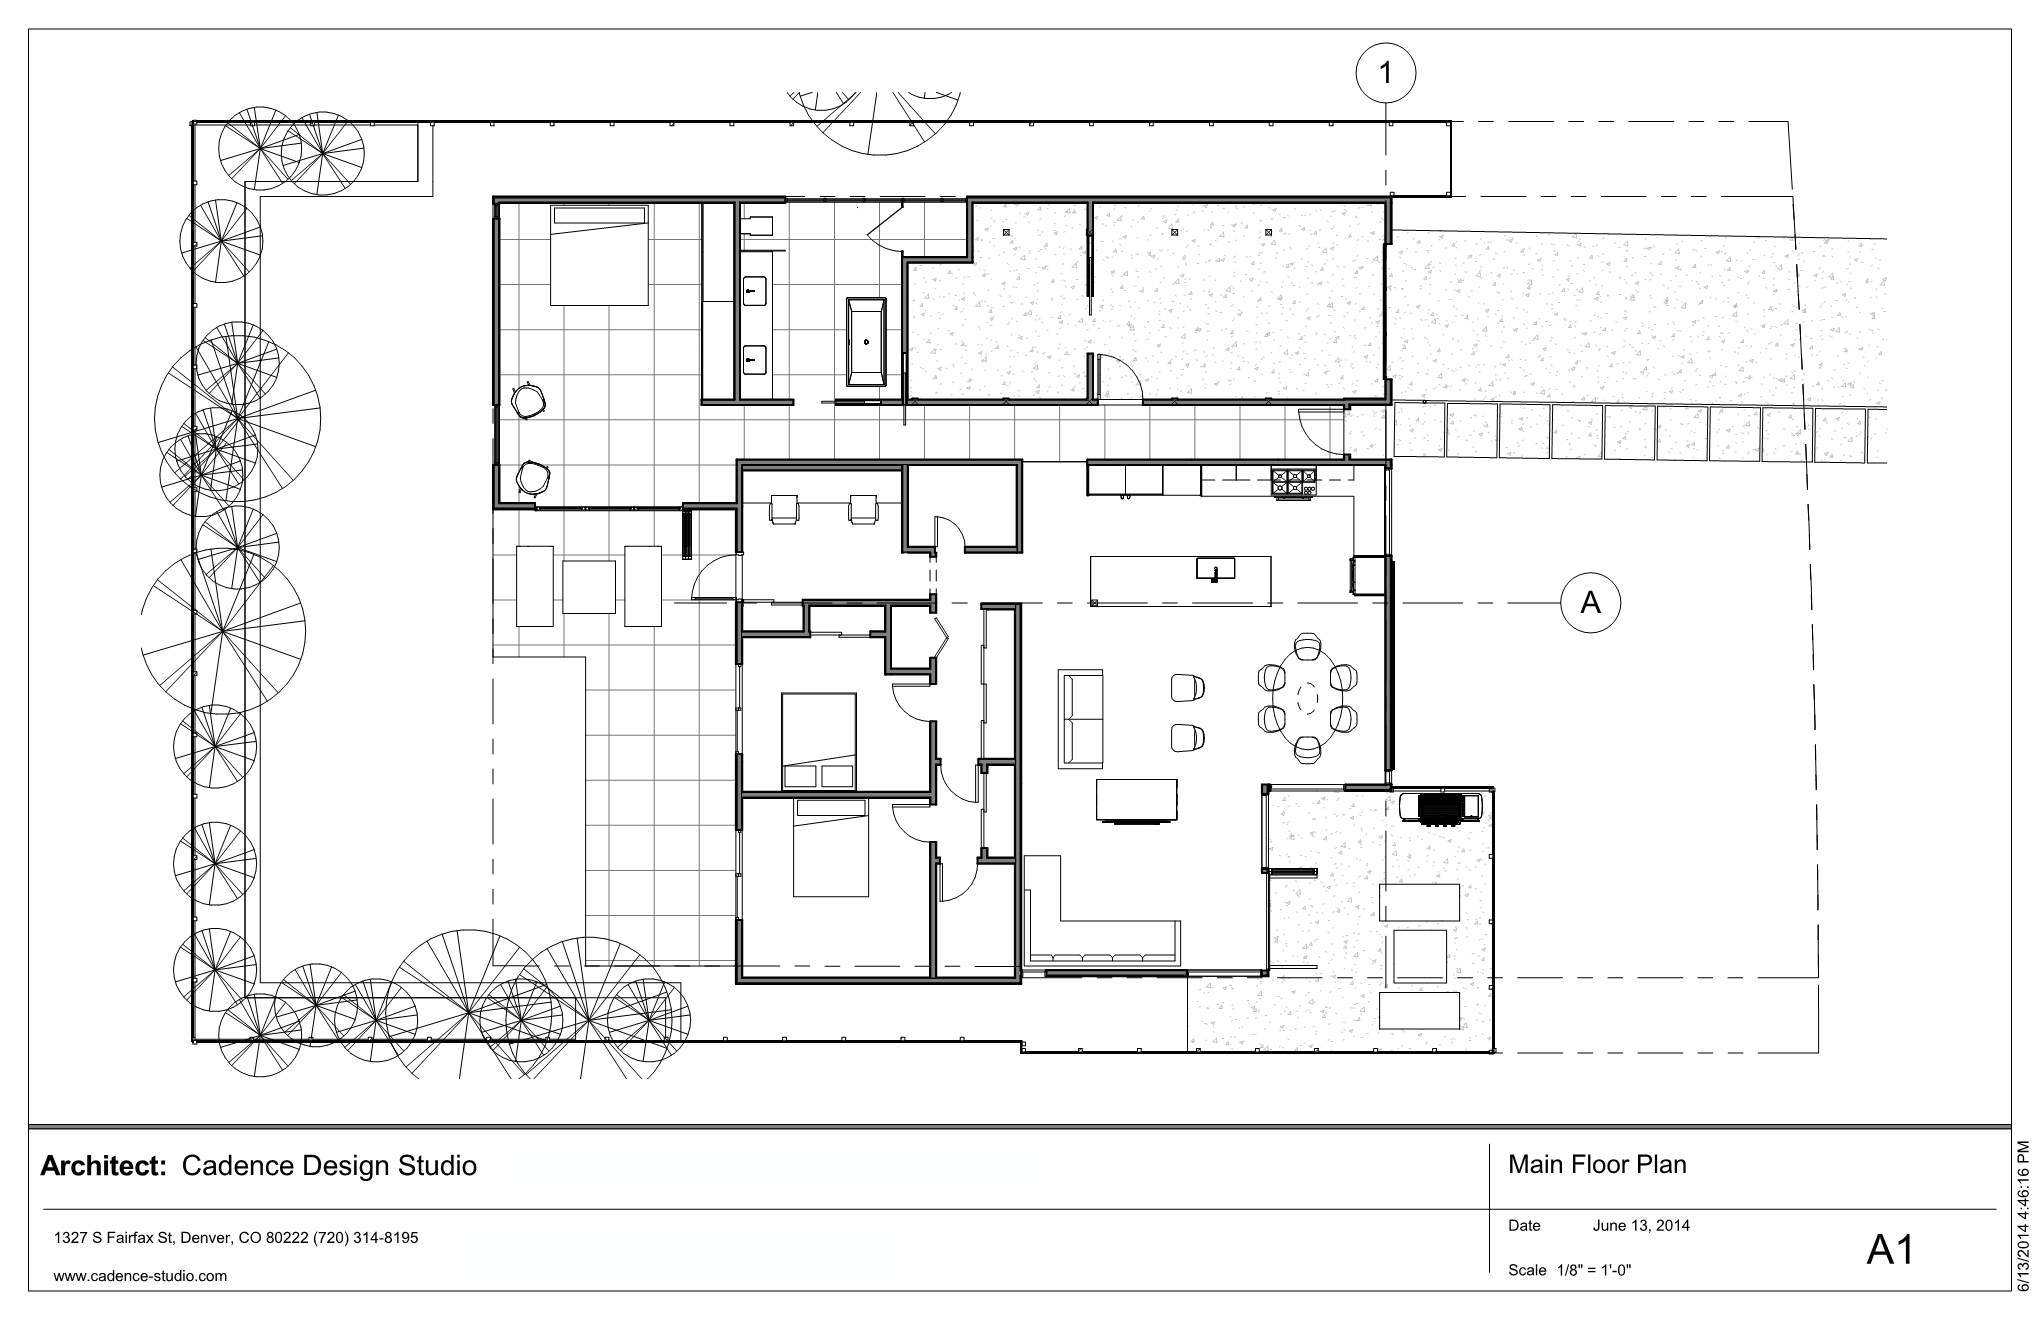 KP-Main-Floor-Plan -Proposed 20140613.png